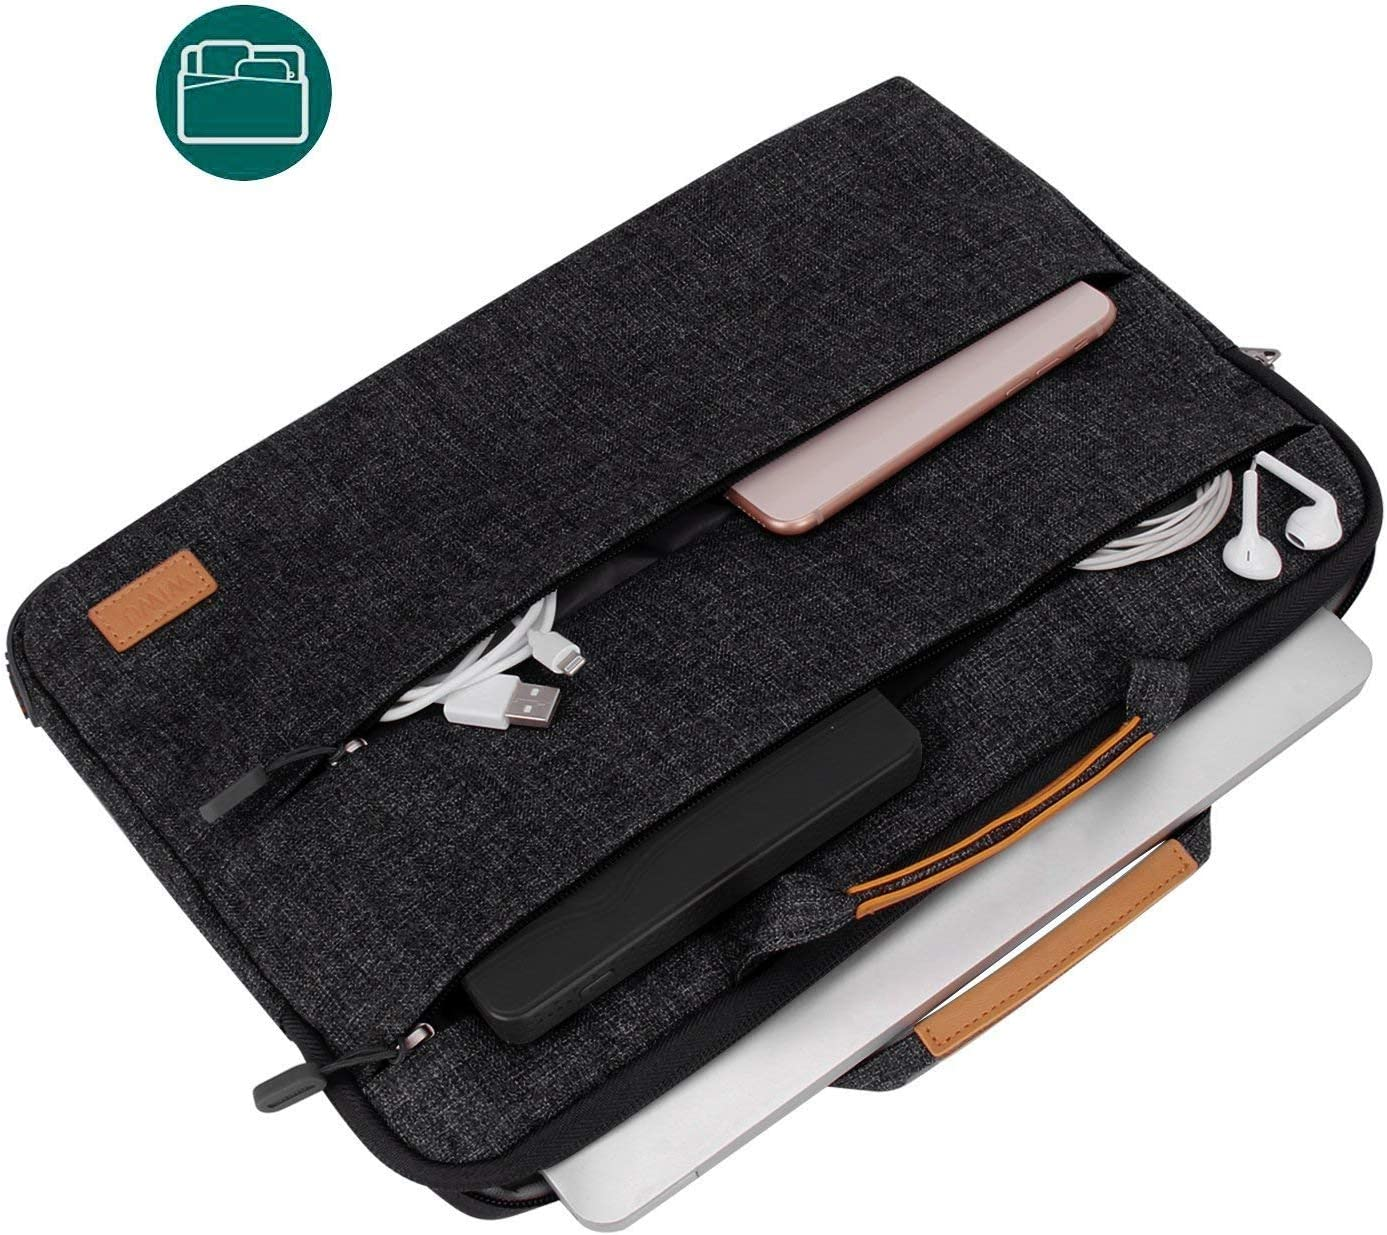 15.4 inch, Black WIWU 15 inch Laptop Sleeve Case Stand Features MacBook Pro 15 in//New Surface Book 2 15//Dell XPS 15//HP Envy Spectre//Asus ZenBook UX550VE//Carrying Case Handle